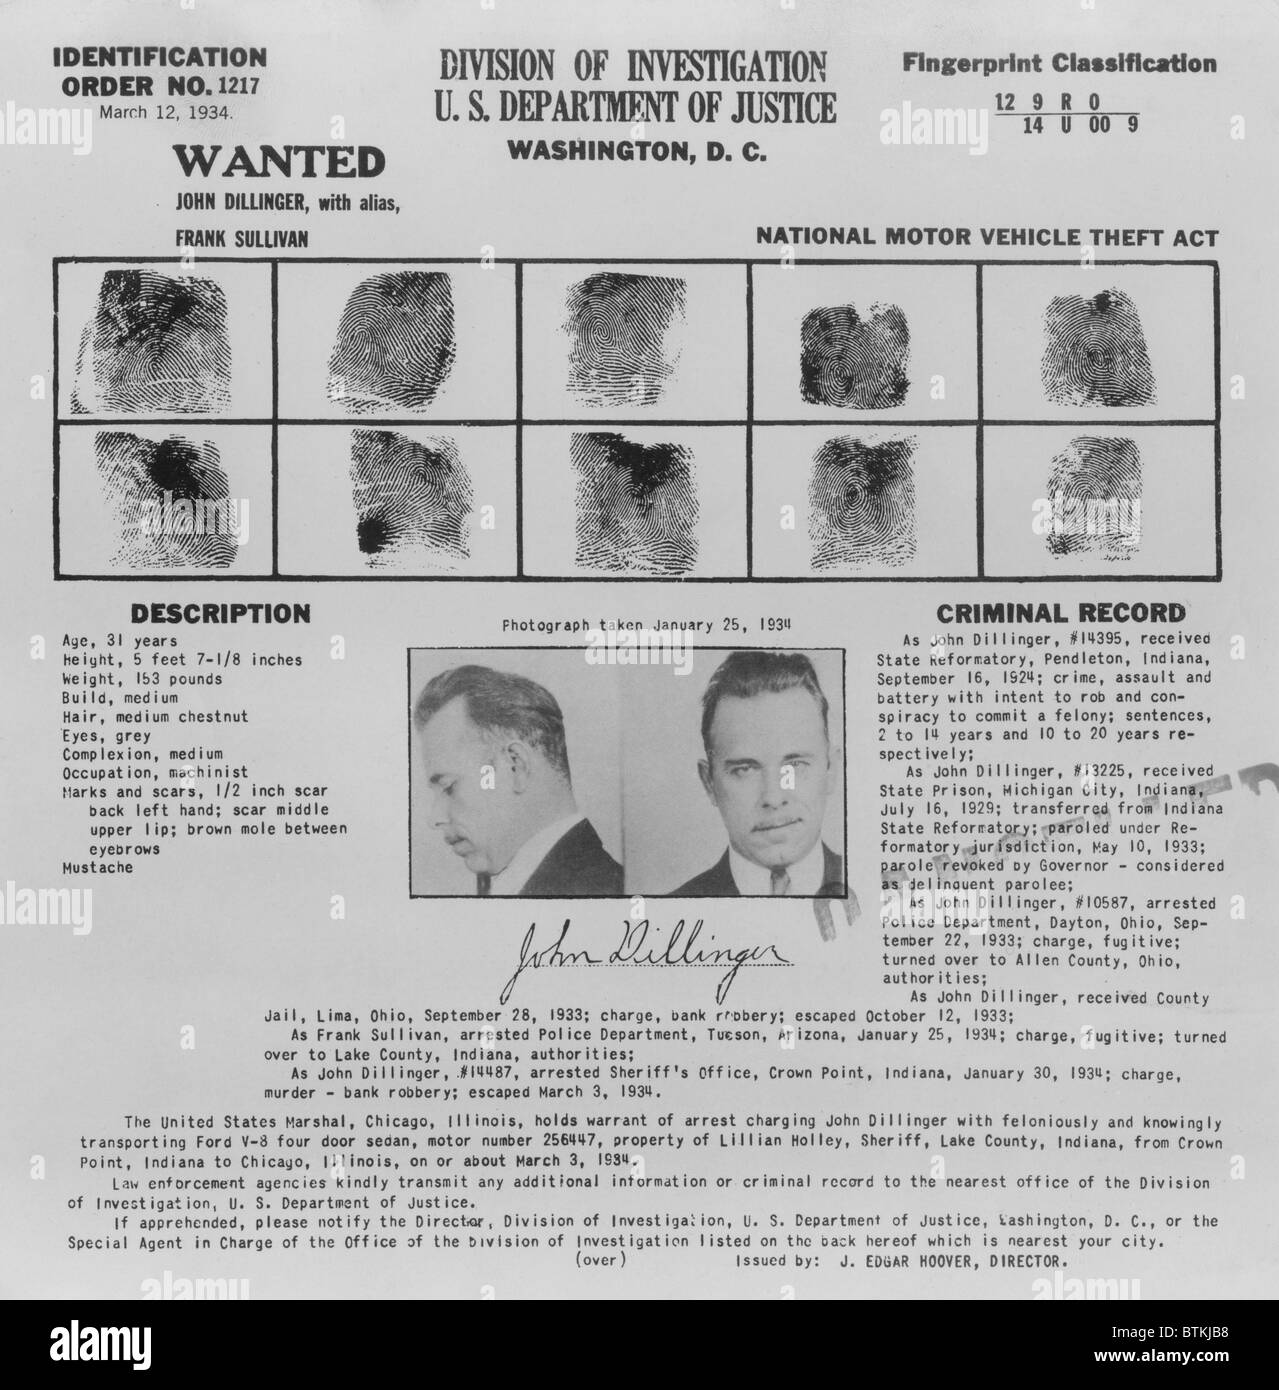 Wanted Poster for John Dillinger, displaying his fingerprints, signature, and portrait. 1934. - Stock Image